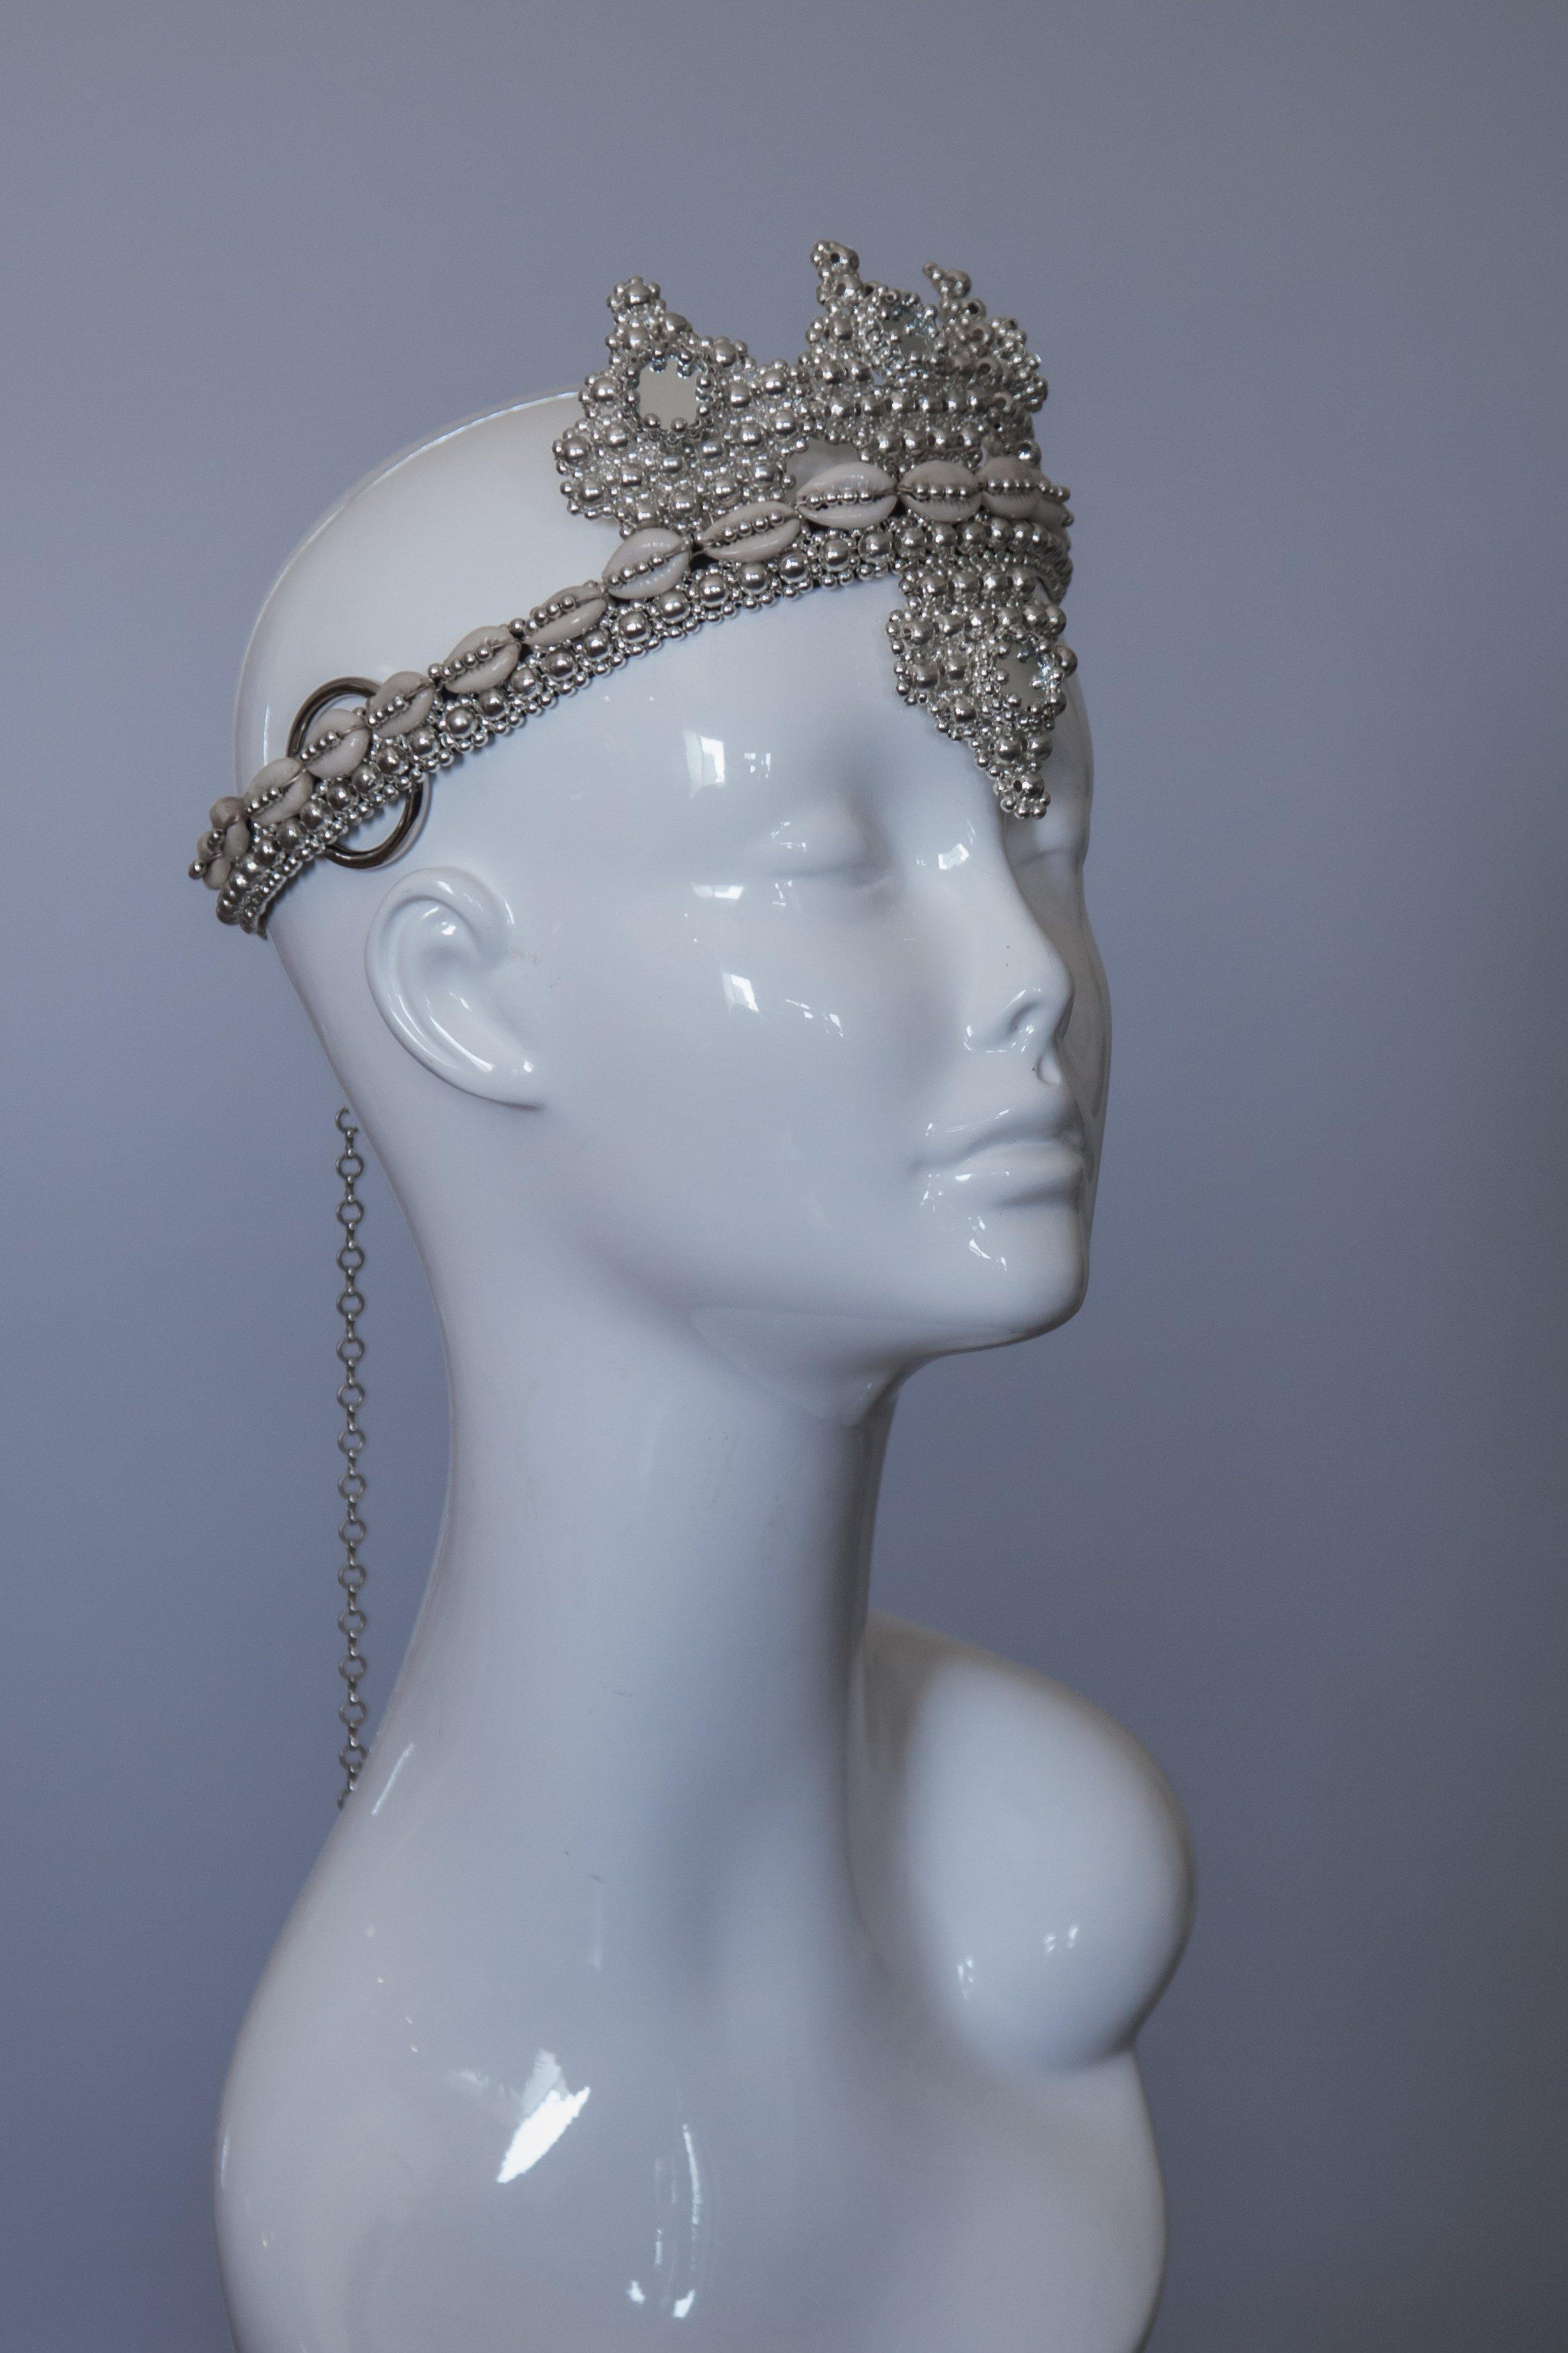 Elohim Modular Headpiece System with White Tassels